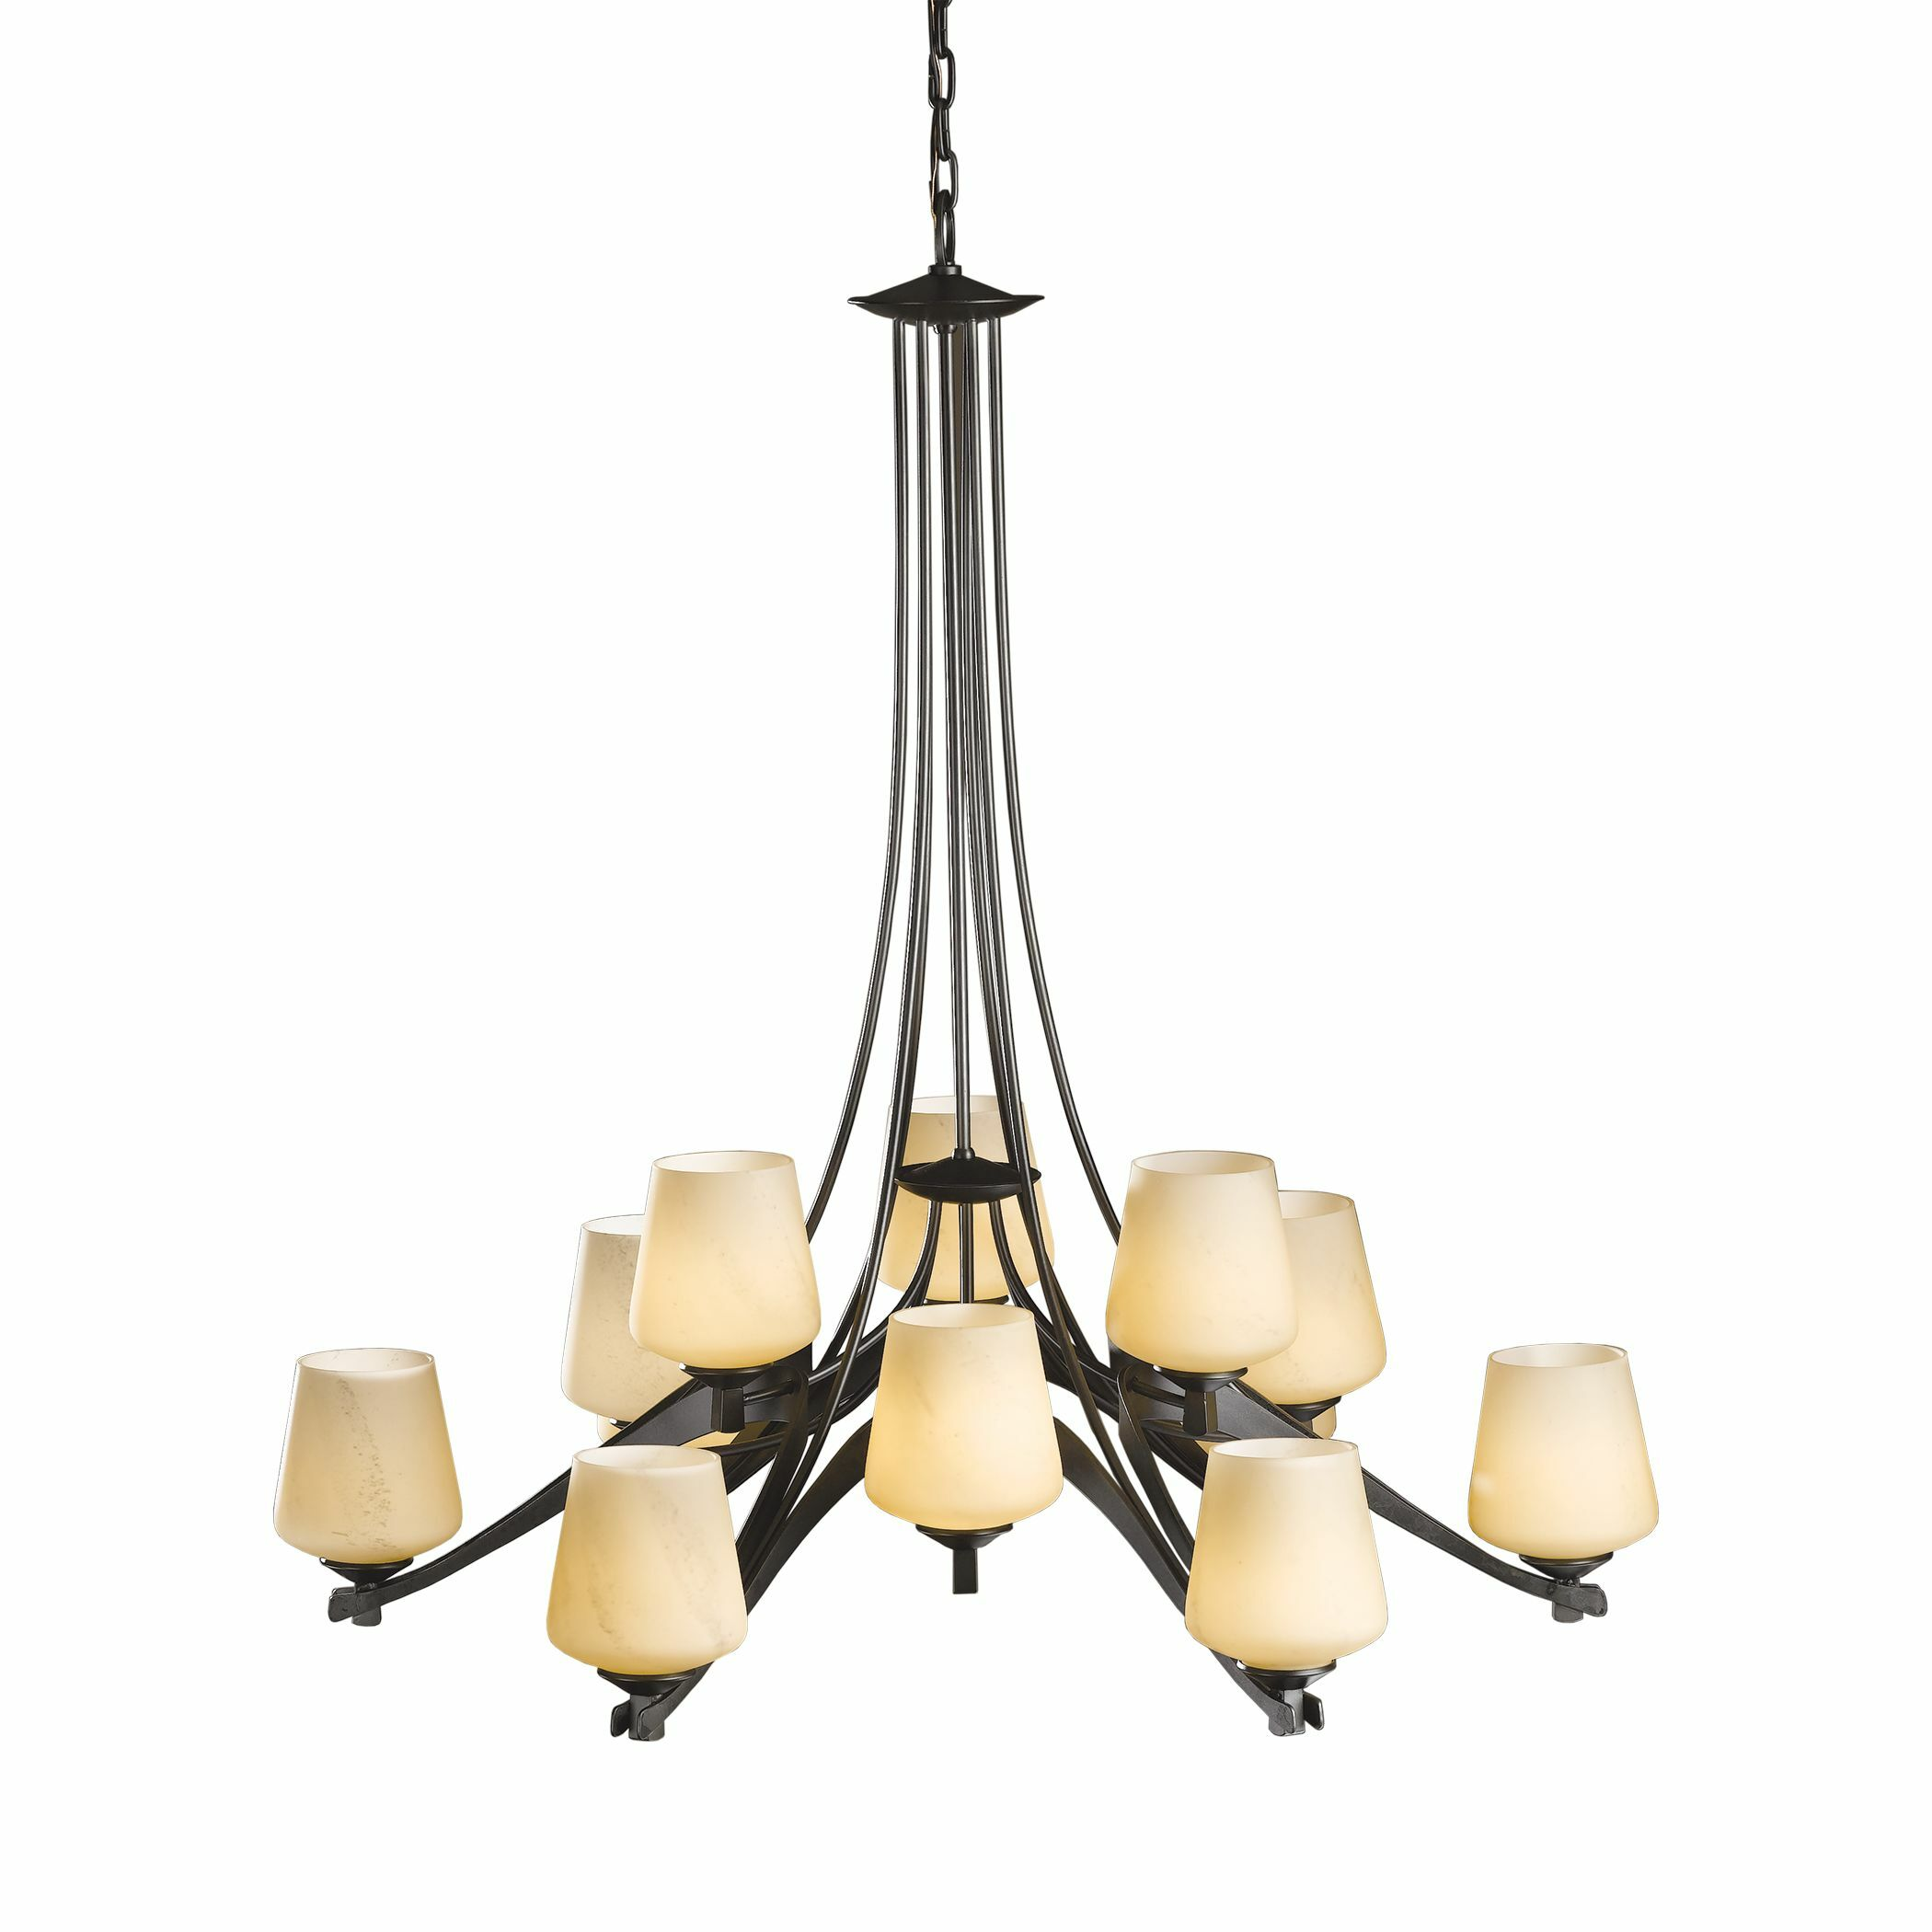 Ribbon 12-Light Shaded Chandelier Finish: Dark Smoke, Shade Color: Stone, Bulb Type: (12) 75W A-19 fluorescent bulbs